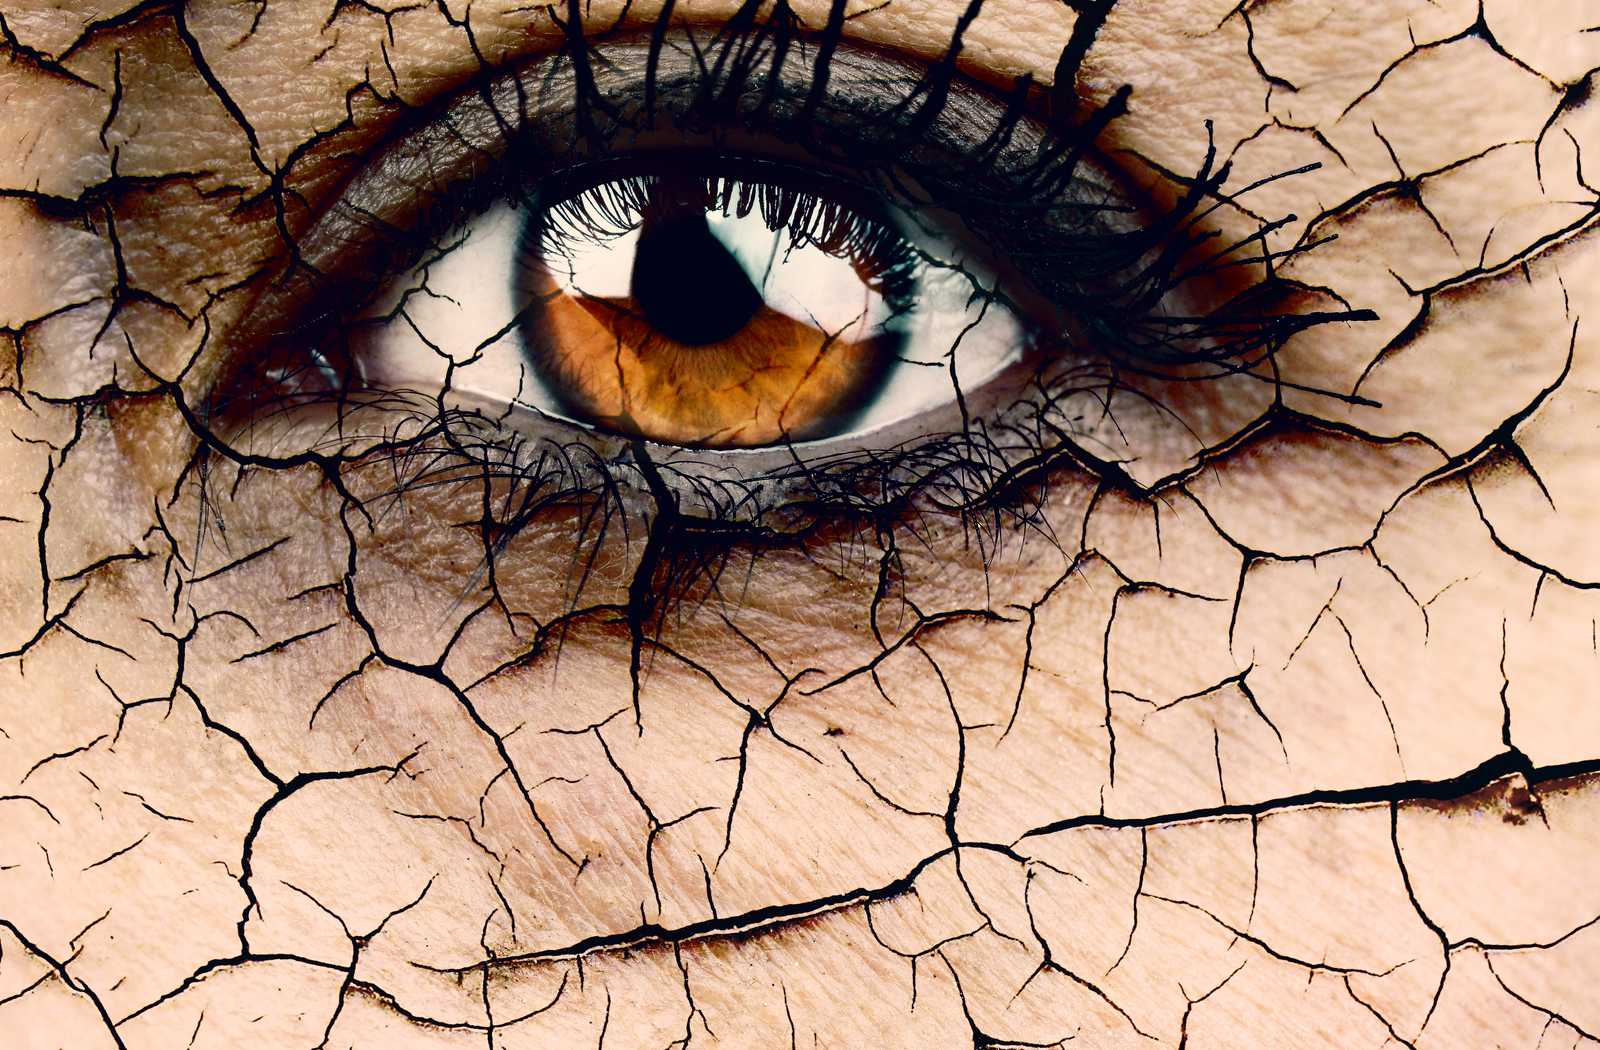 Illustration of dry eyes where the area of the face around the eye looks like cracked, dry earth